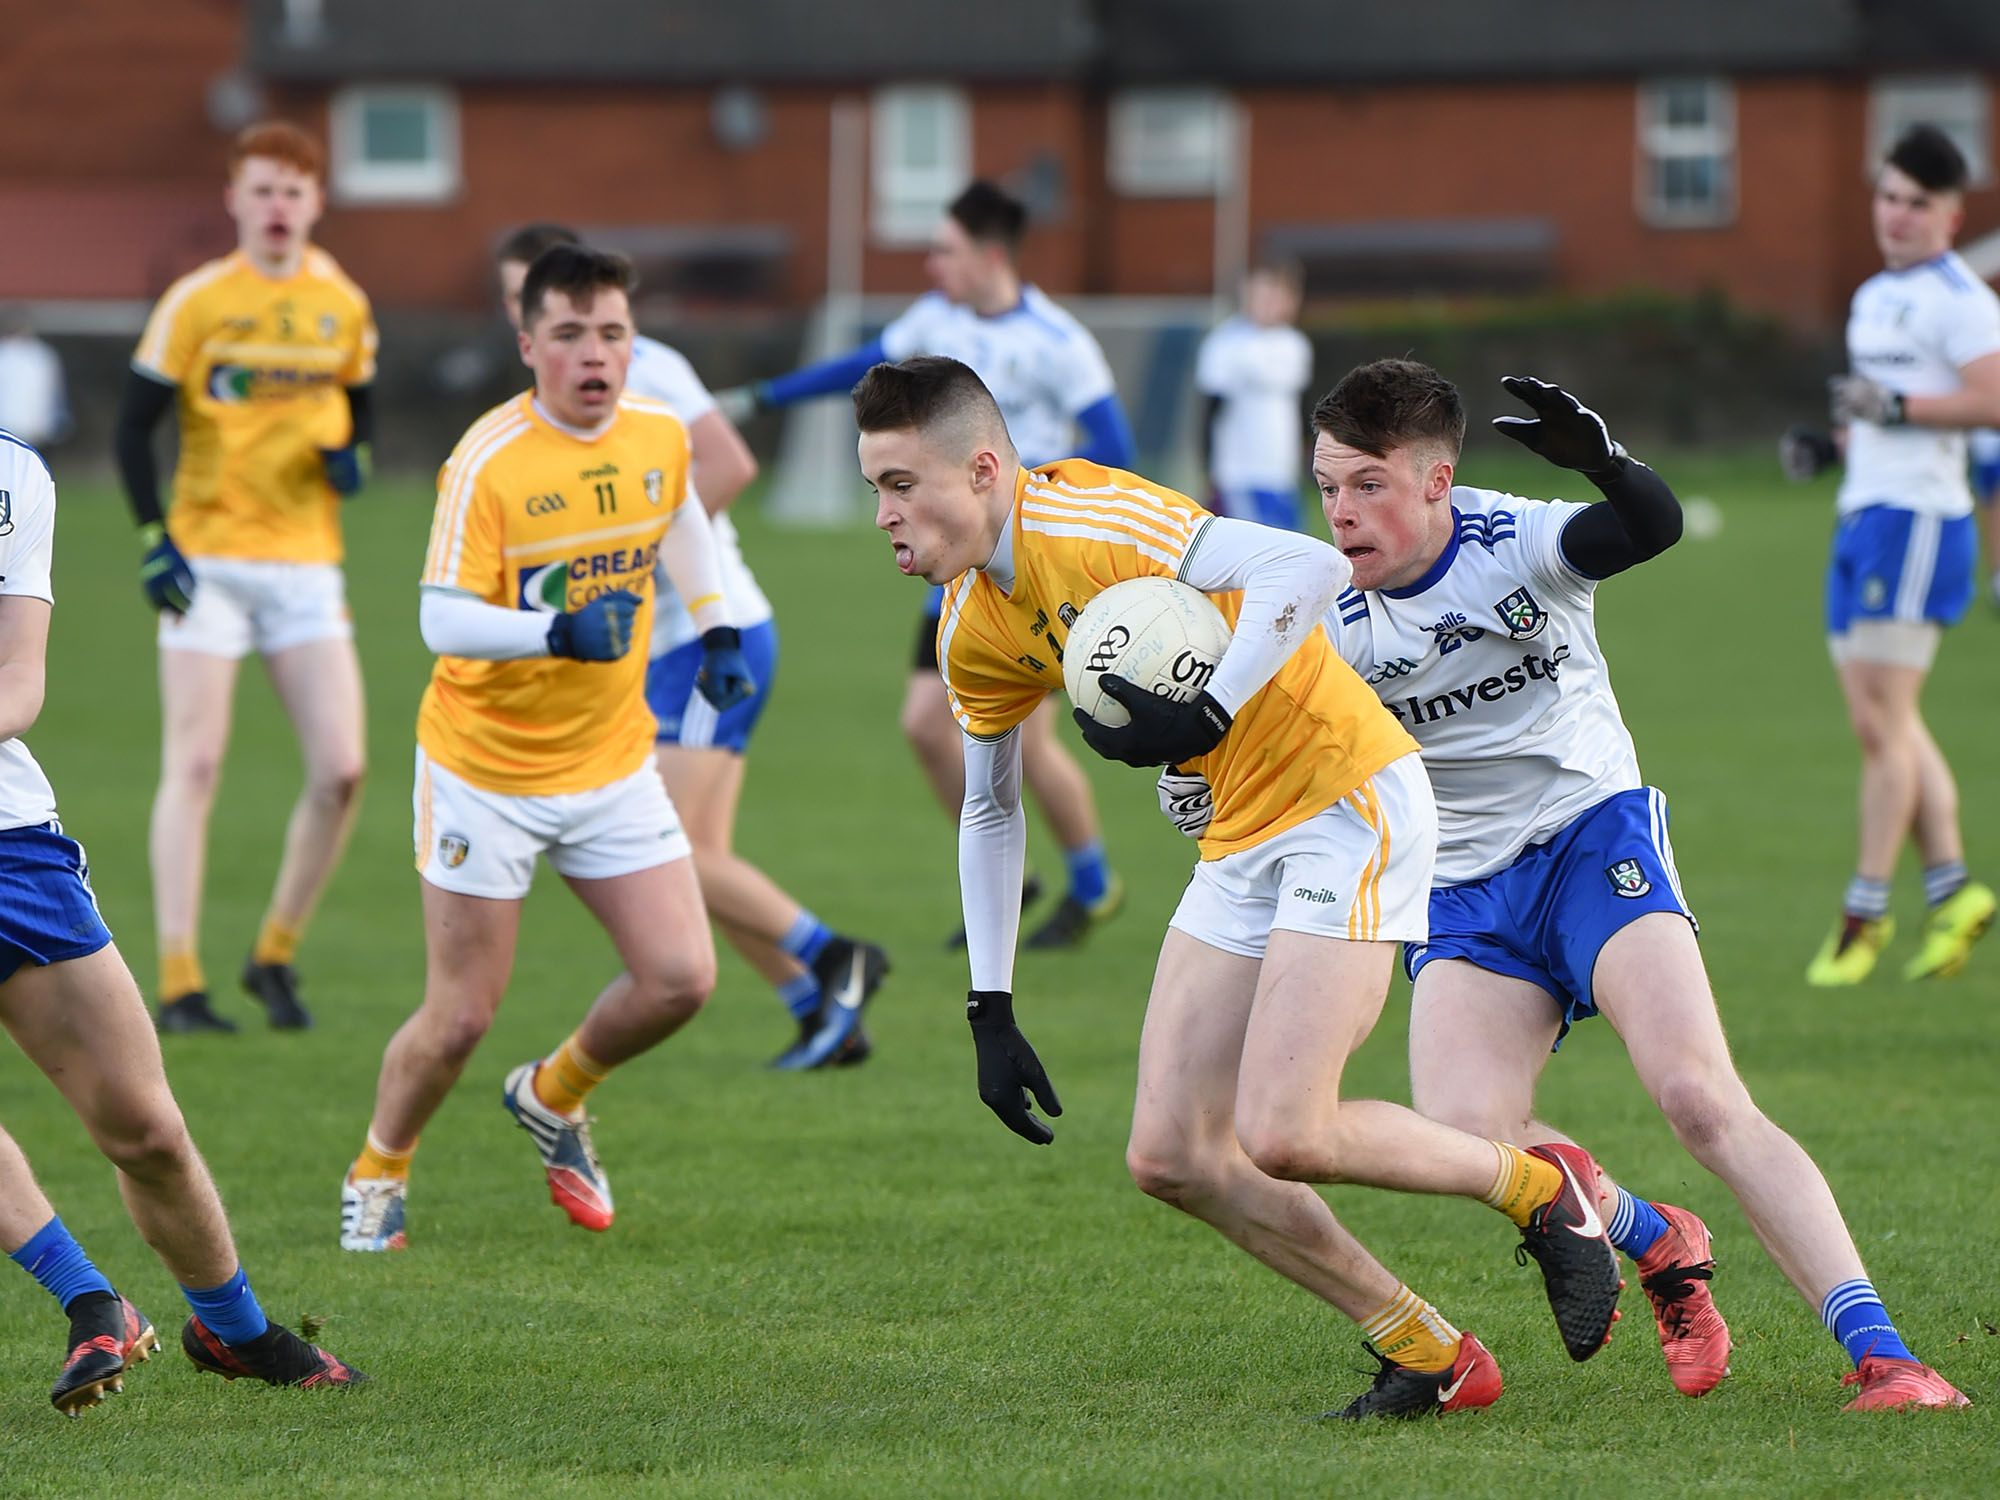 Antrim lost out to Monaghan last year by one point in a low-scoring affair and were due to meet in Toome this weekend, but the game has been postponed until further notice due to Level Five restrictions